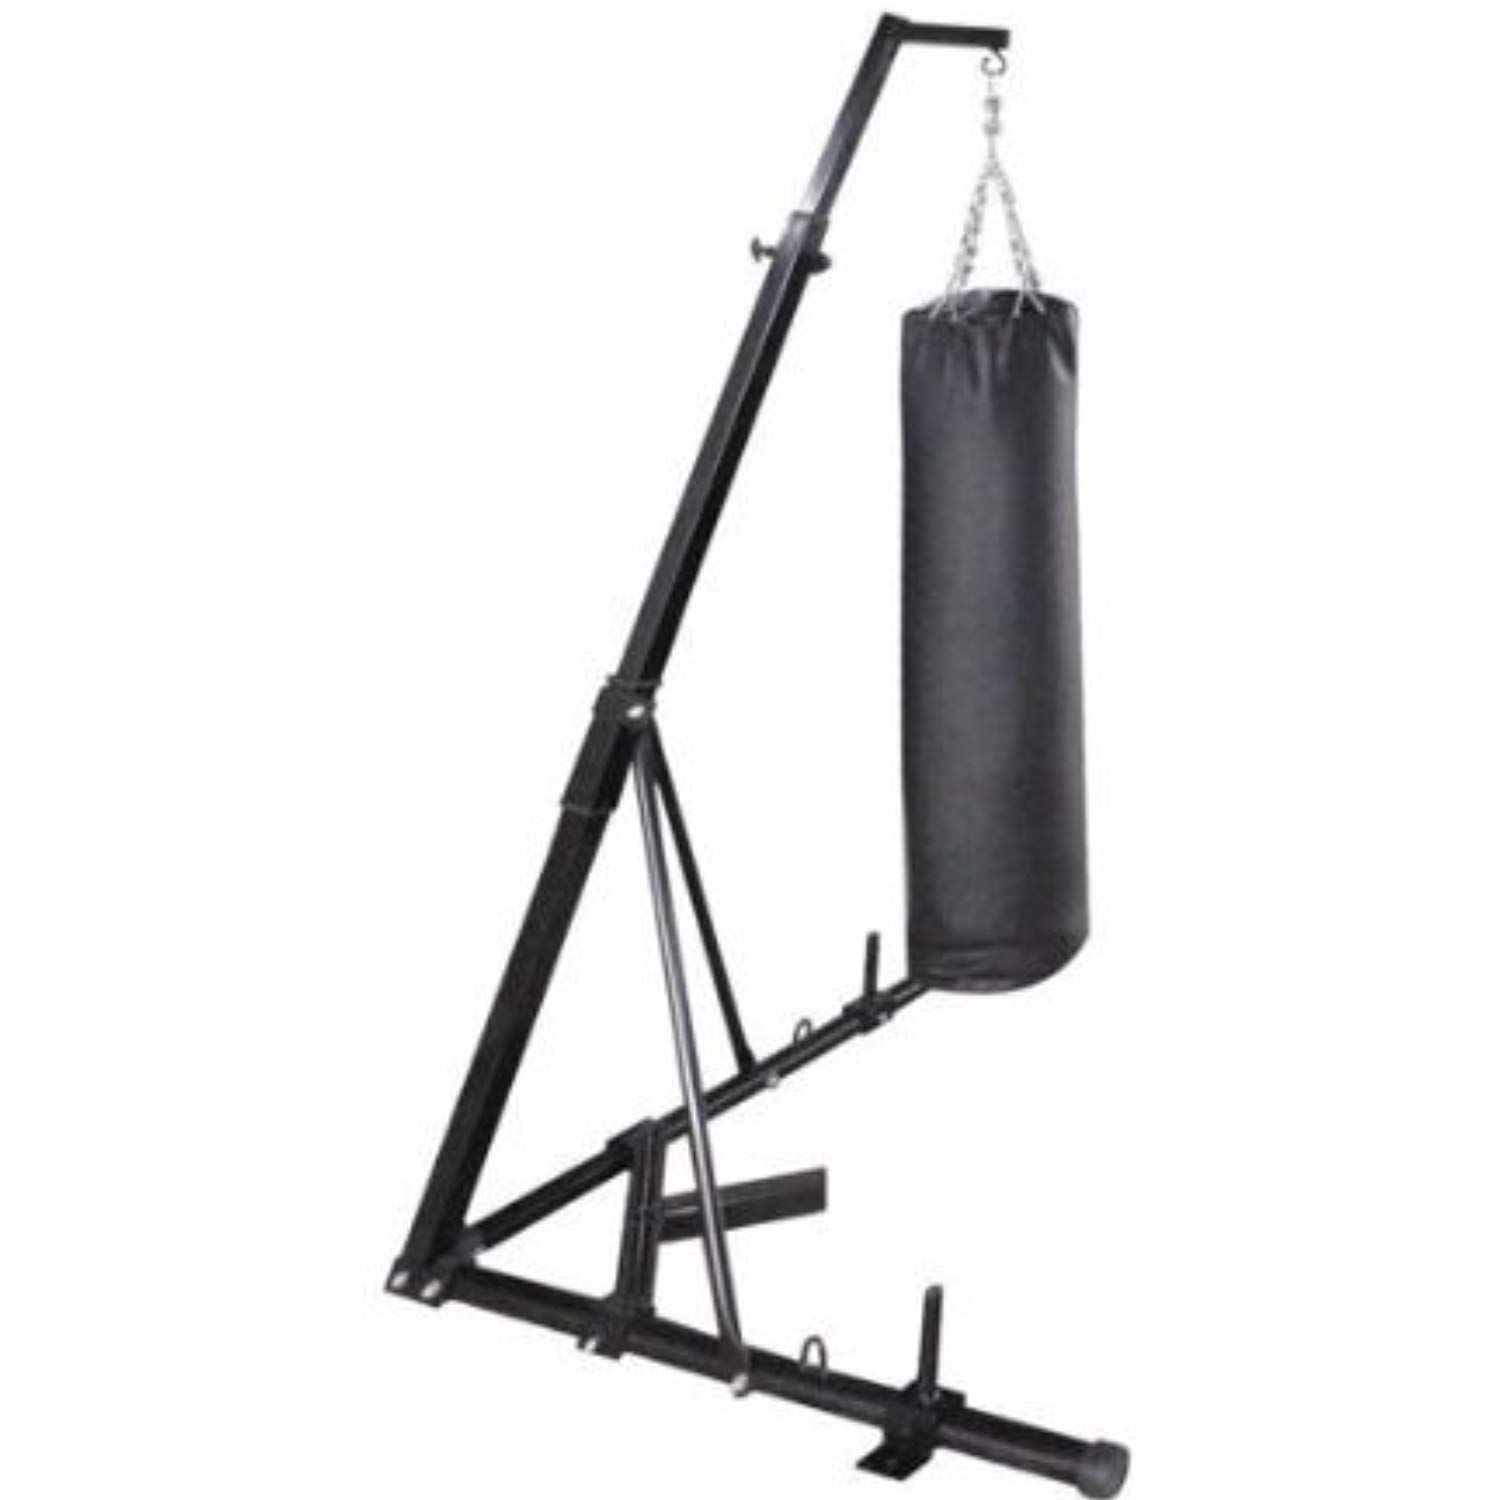 Happybuy free standing boxing bag stand foldable single